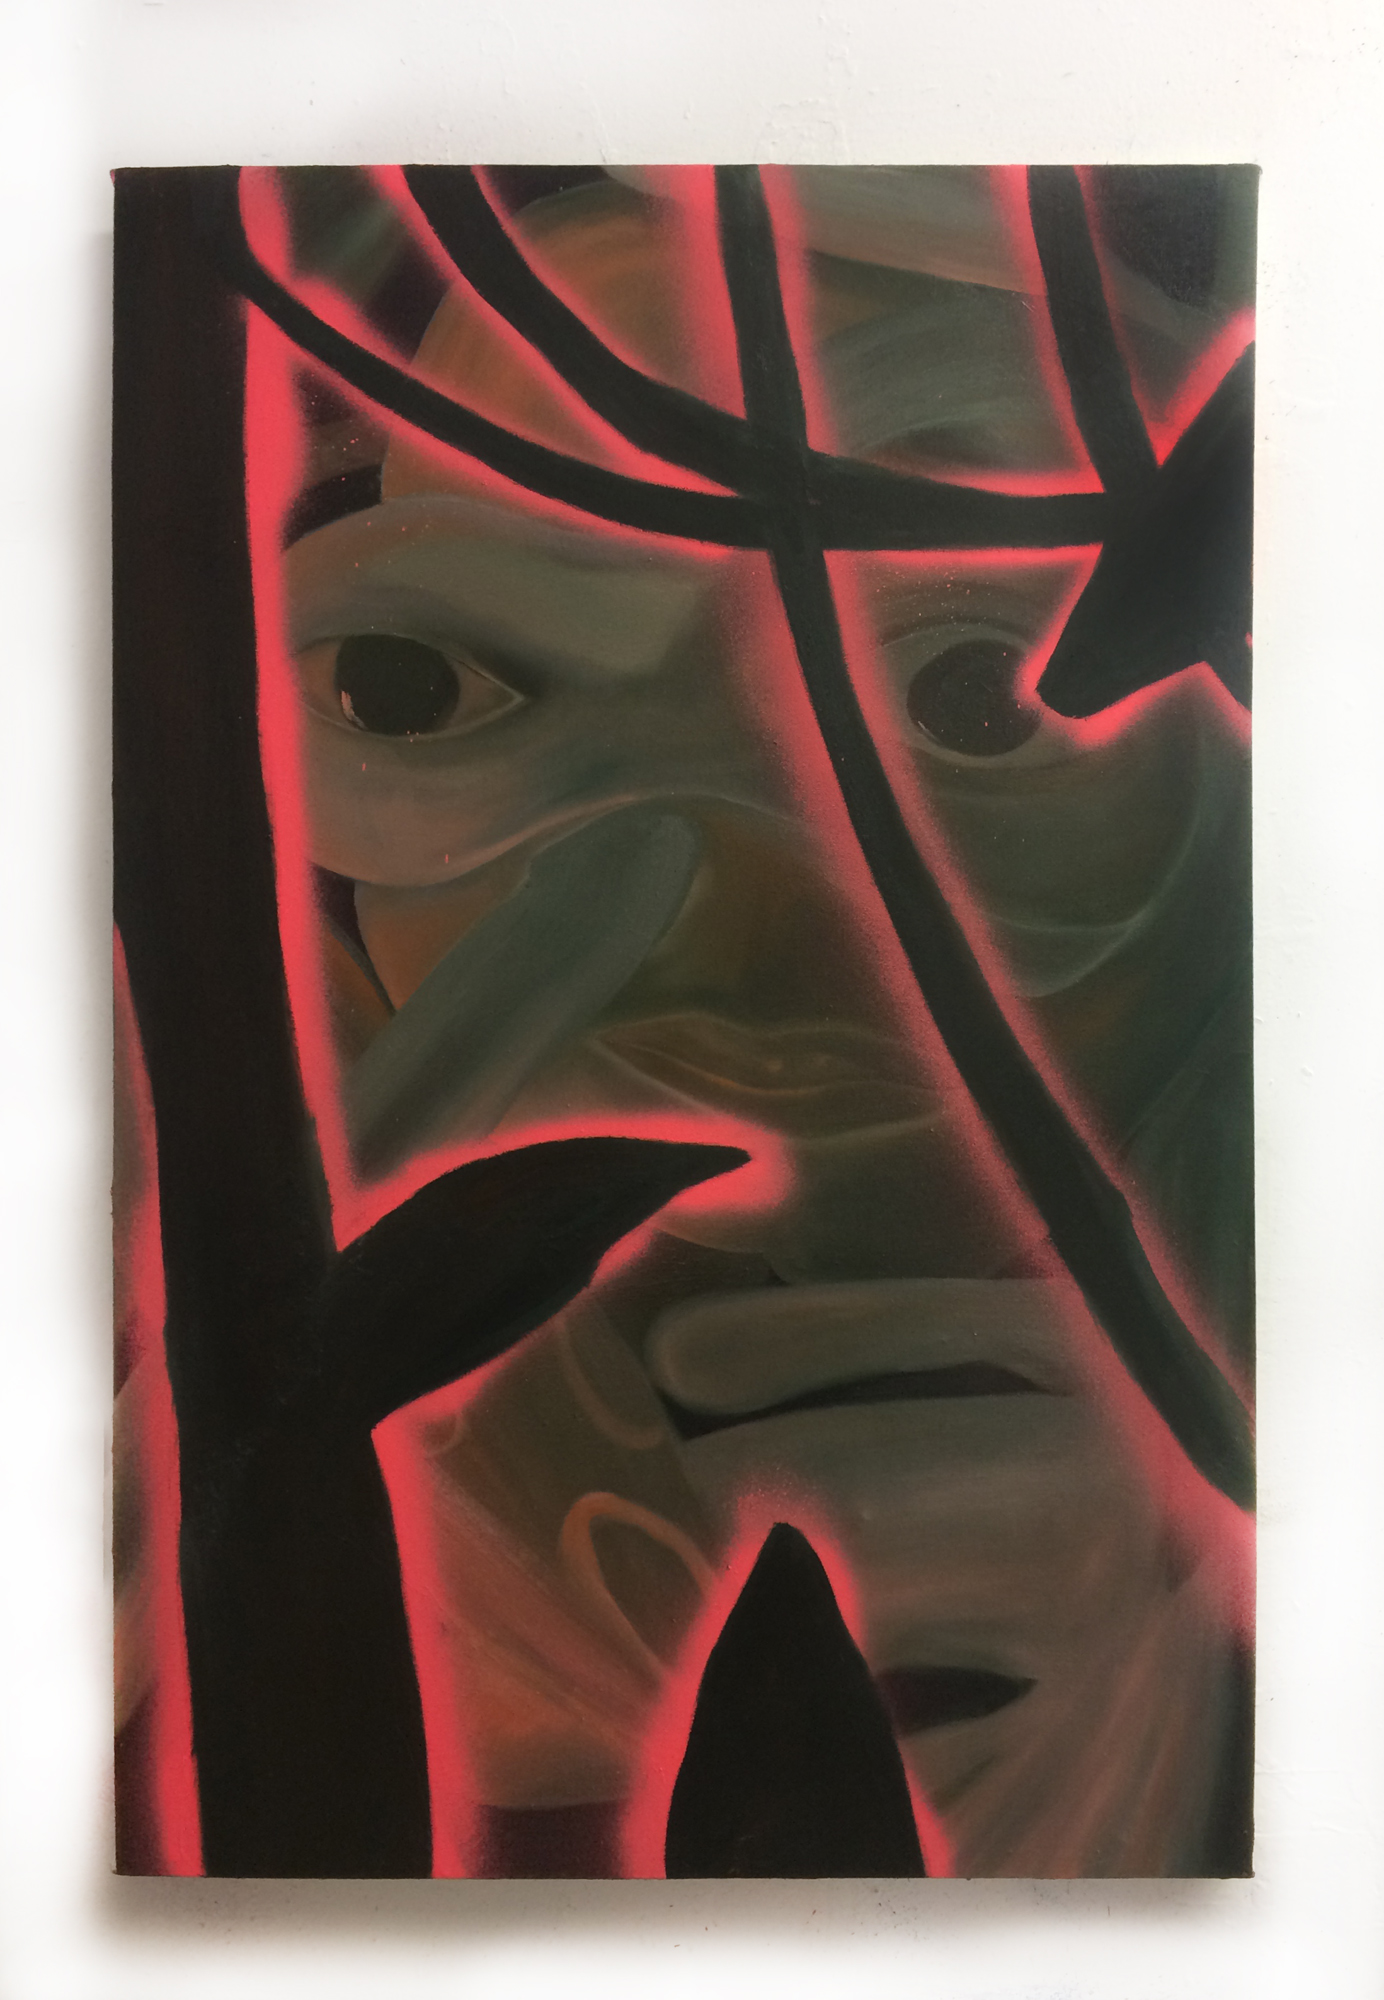 Claire Scherzinger,Afterburner--no spirit lingering,2016,oil and spray paint on canvas,36 x 24 in.